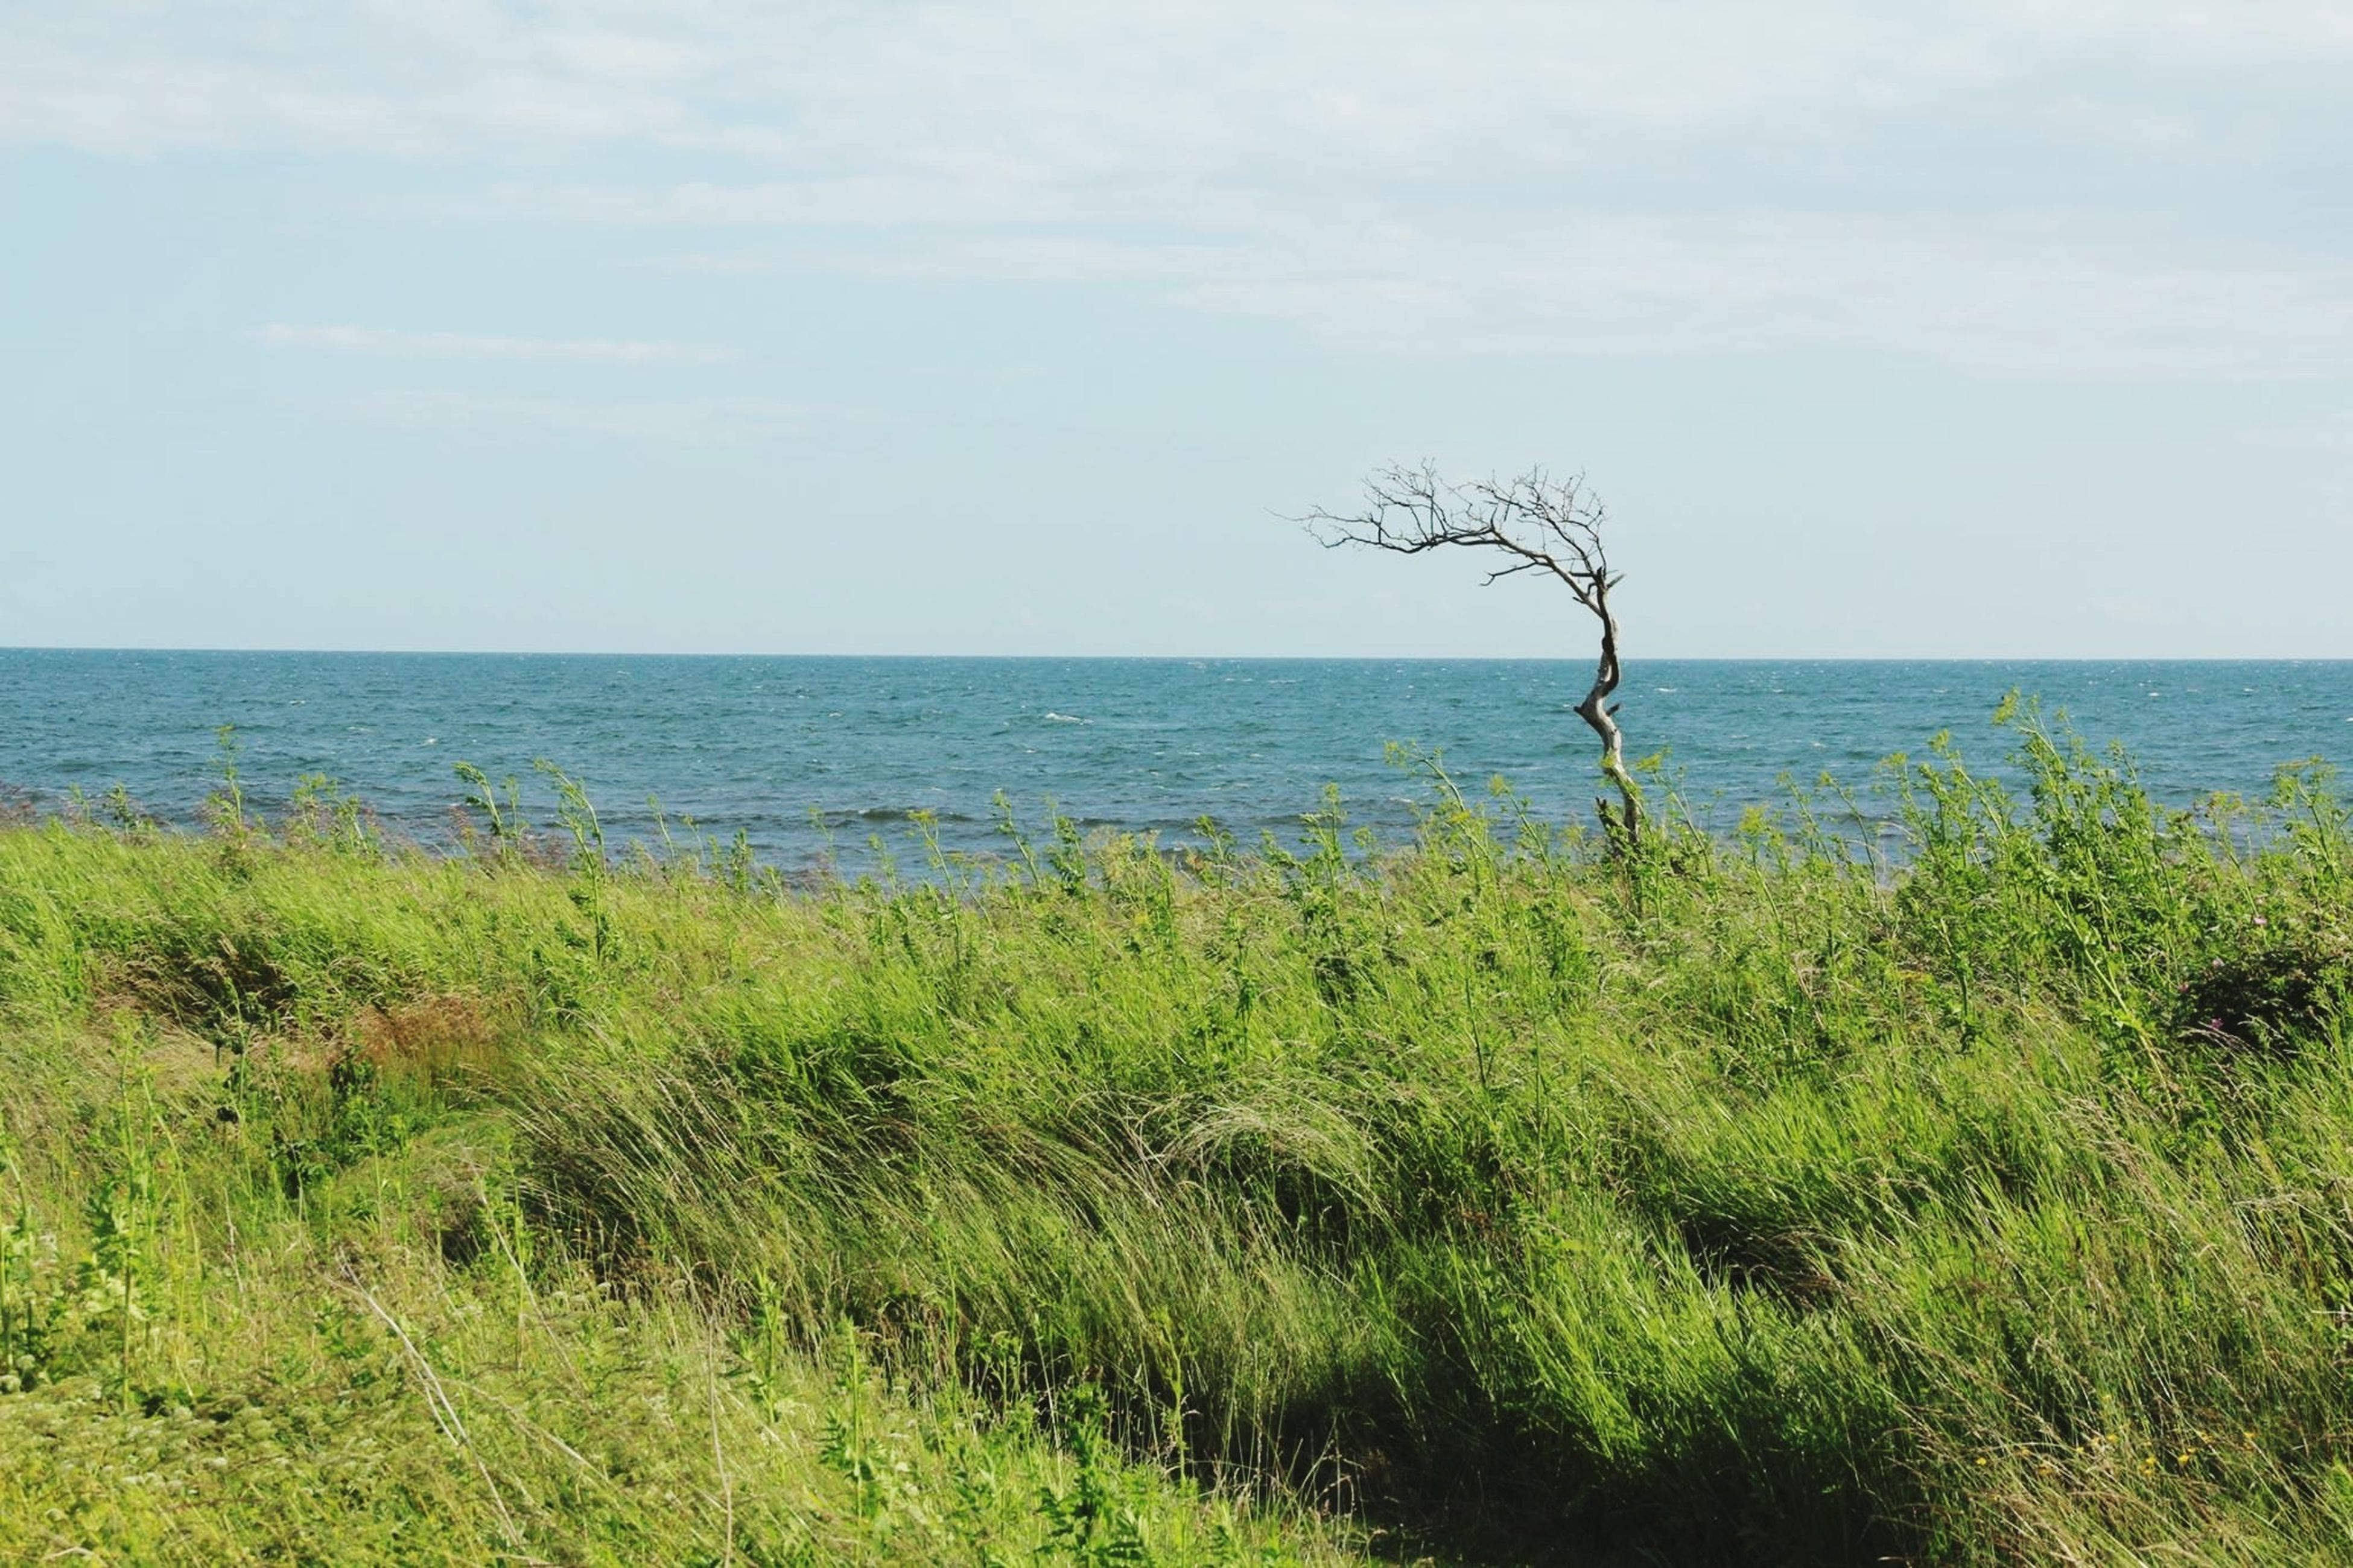 horizon over water, sea, water, tranquil scene, tranquility, sky, beauty in nature, scenics, growth, nature, plant, grass, beach, green color, idyllic, shore, day, tree, remote, growing